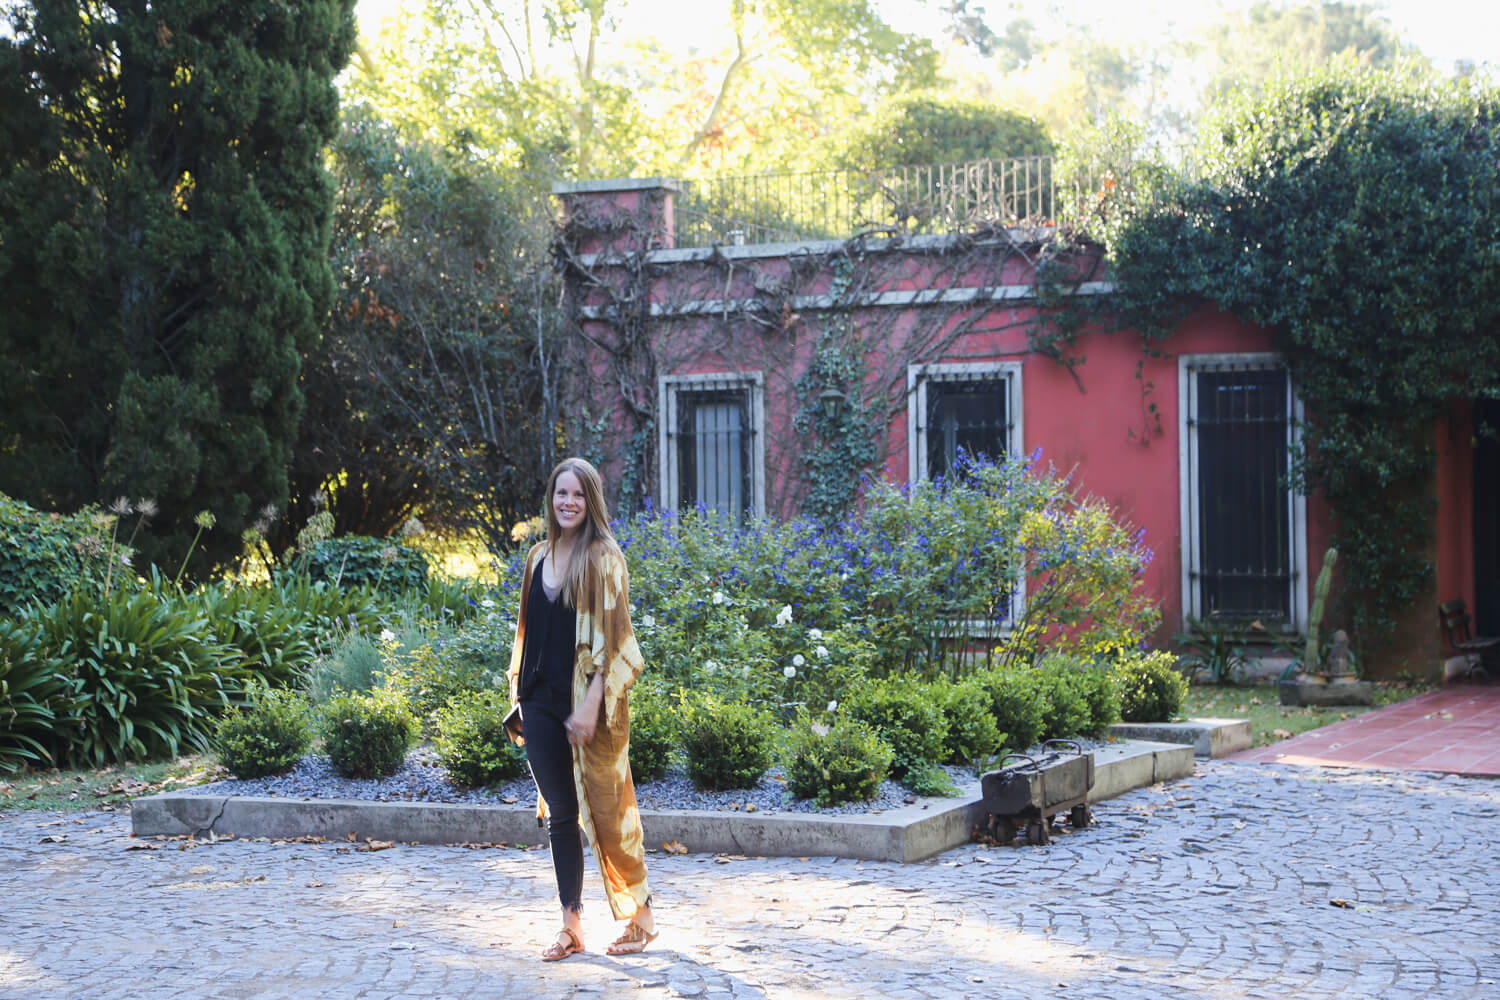 A woman stands in front of a garden and a terracotta colored mansion in Buenos Aires